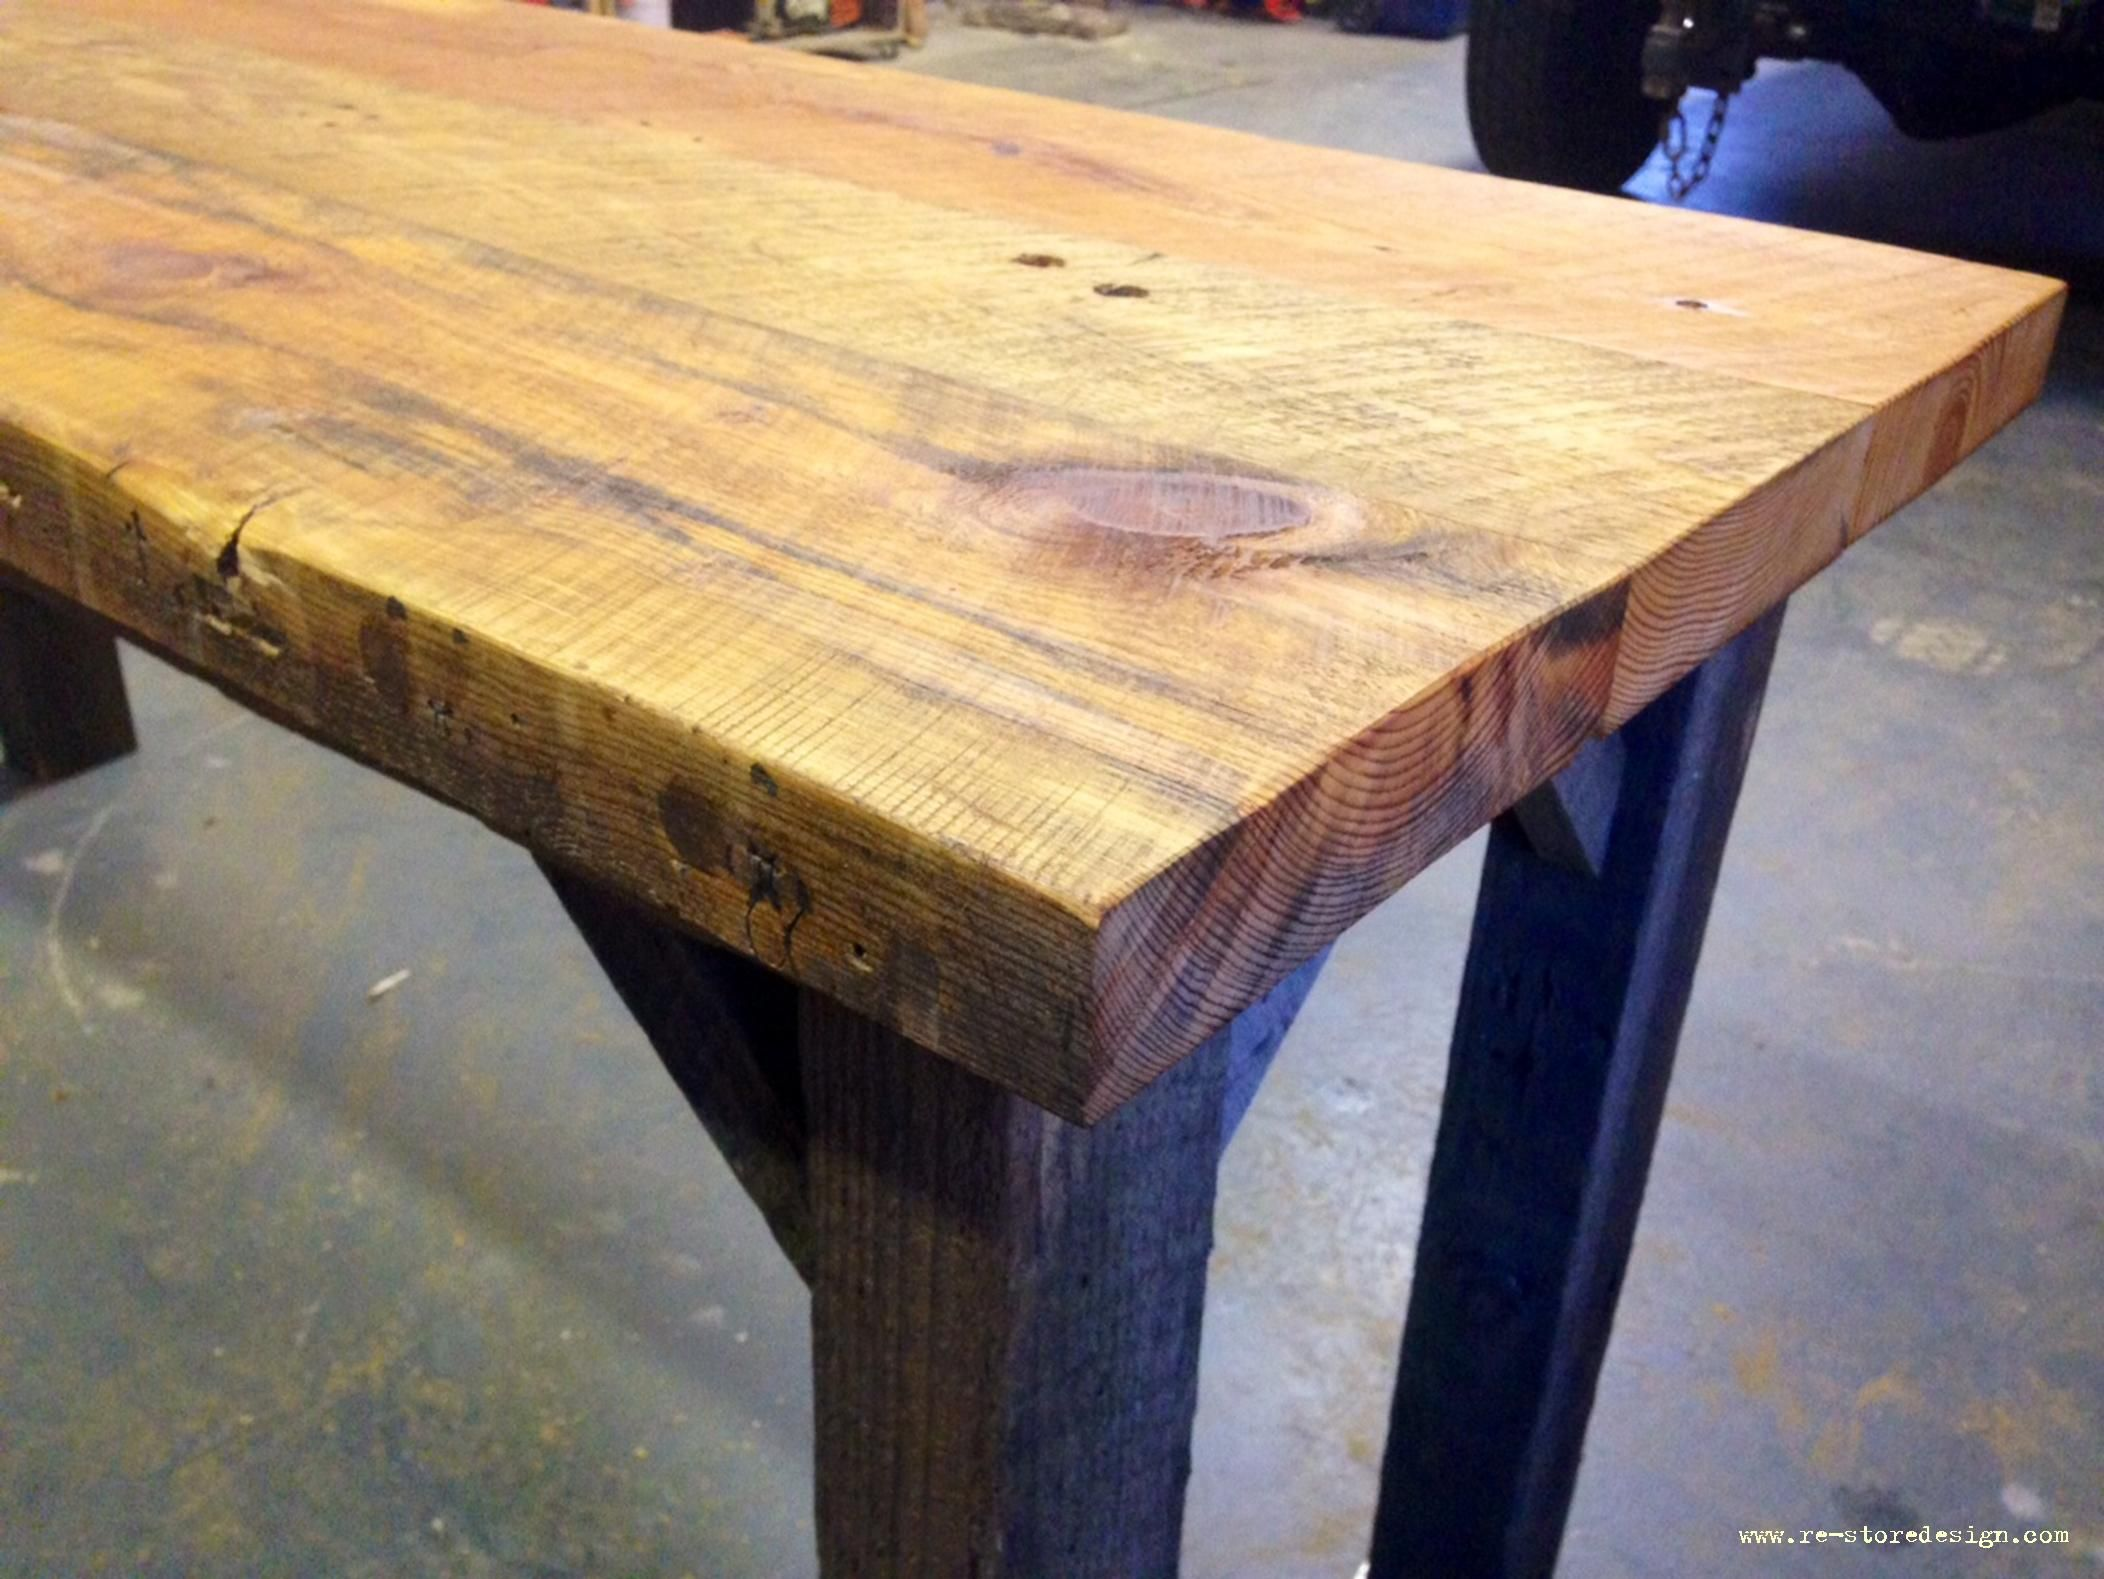 P A Href Http Www Ana White Com Sites Default Files 3154840706 1390493228 Jpg Download Original A P Reclaimed Wood Table Kitchen Bar Table Wood Table